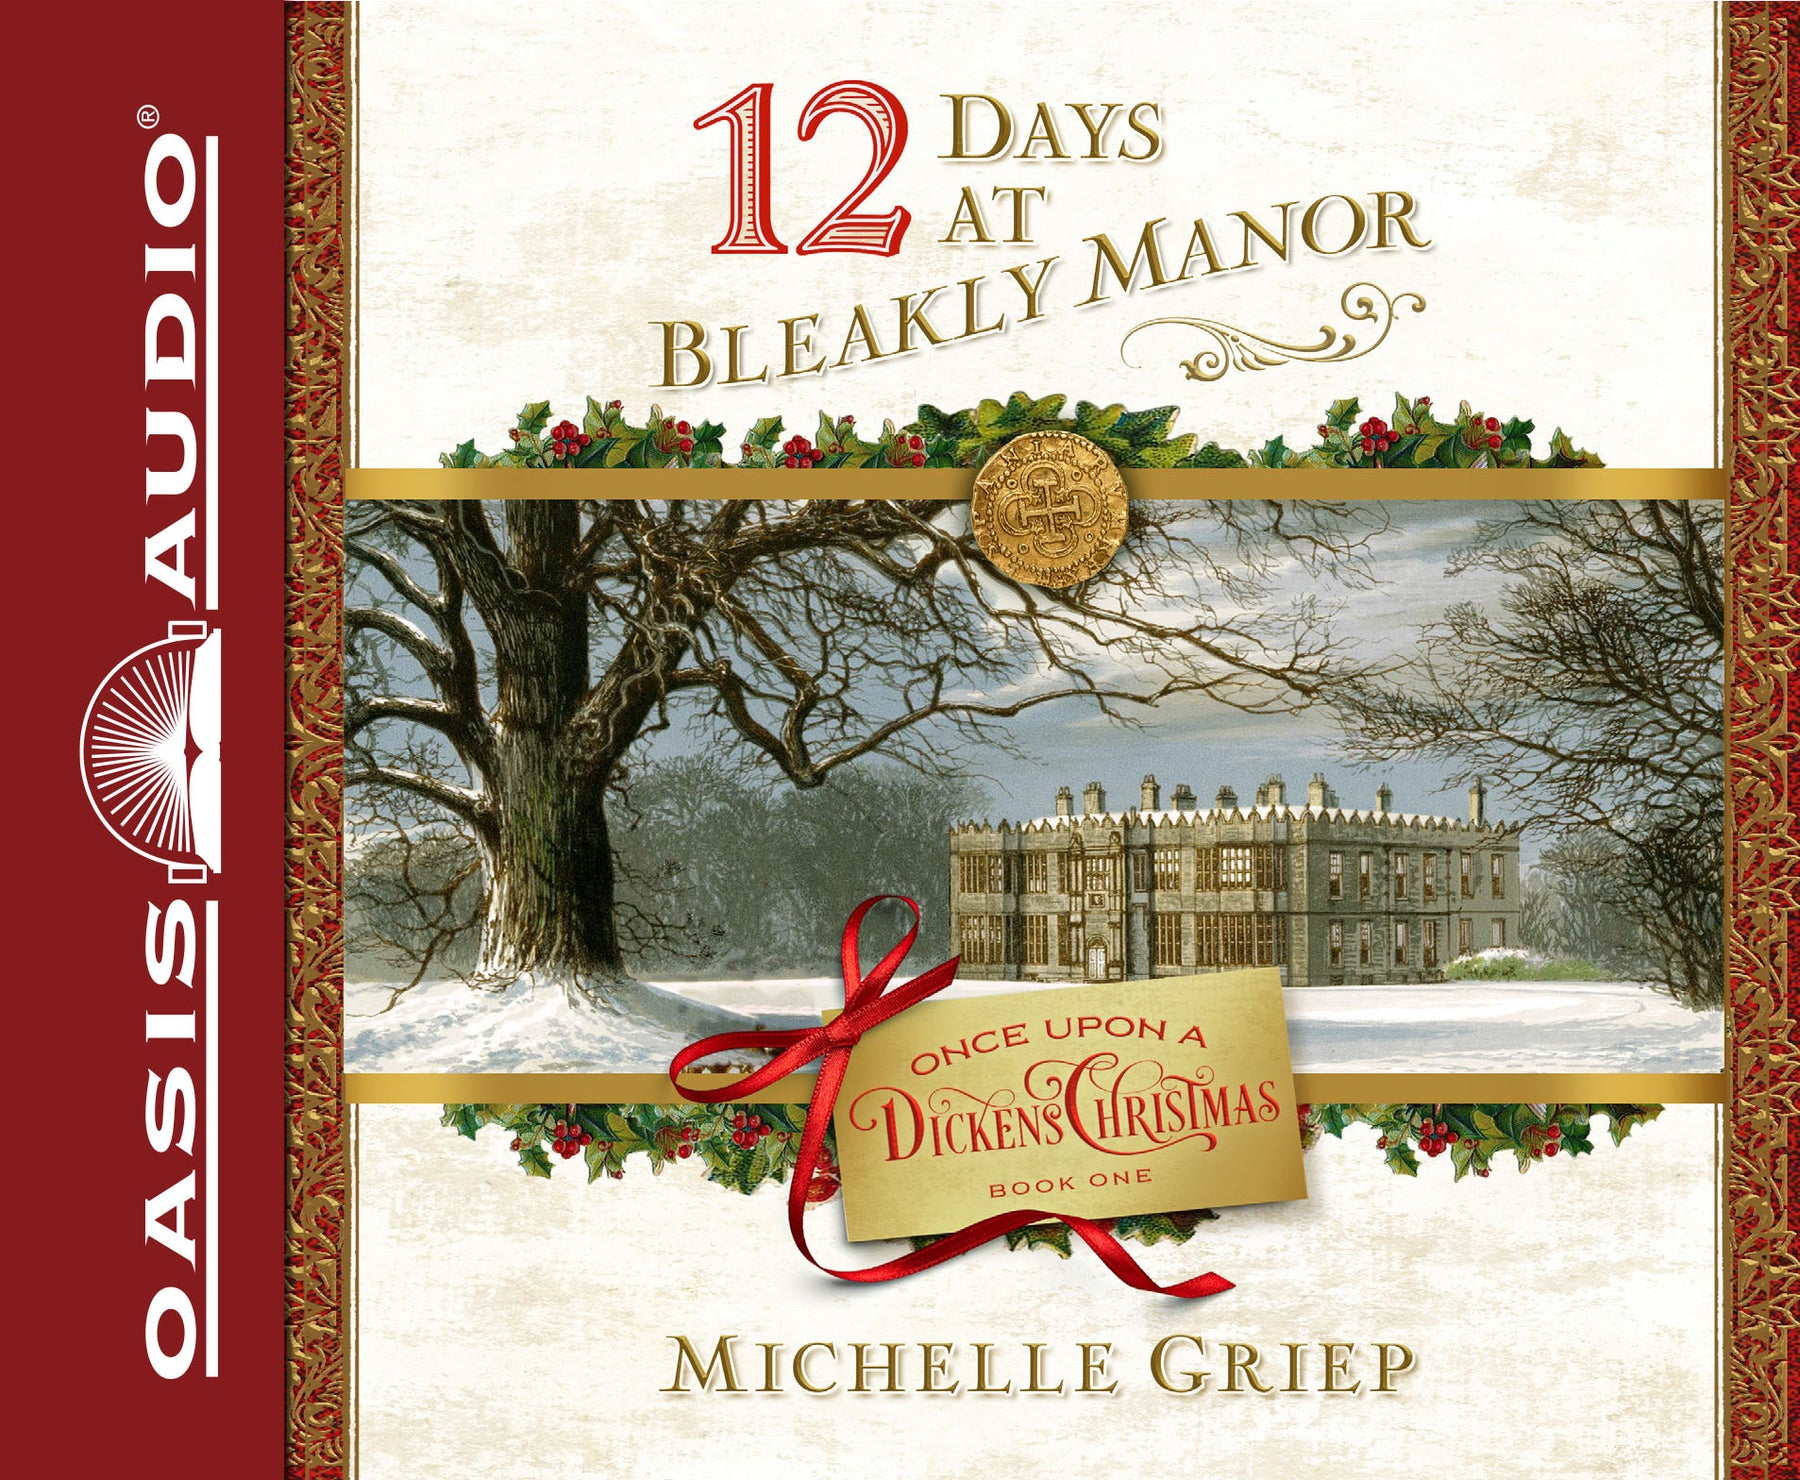 12 Days at Bleakly Manor (Library Edition)